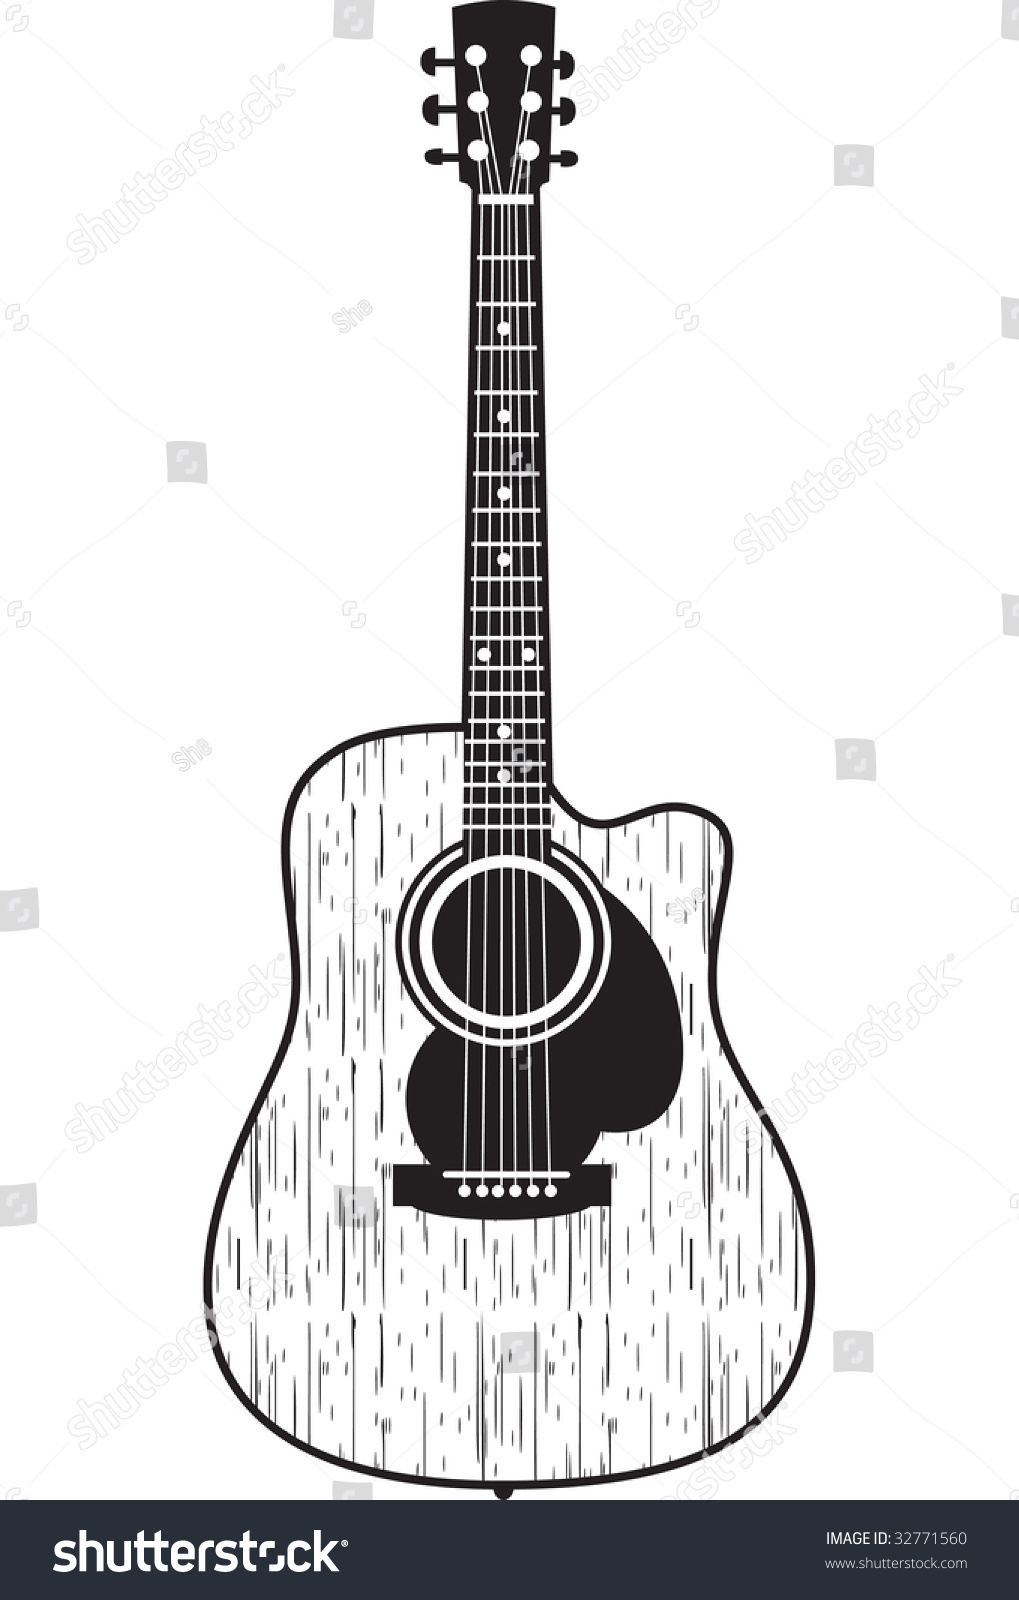 Classic Acoustic Guitar Cool Tshirt Prints Stock Vector ... Classical Music Background Designs